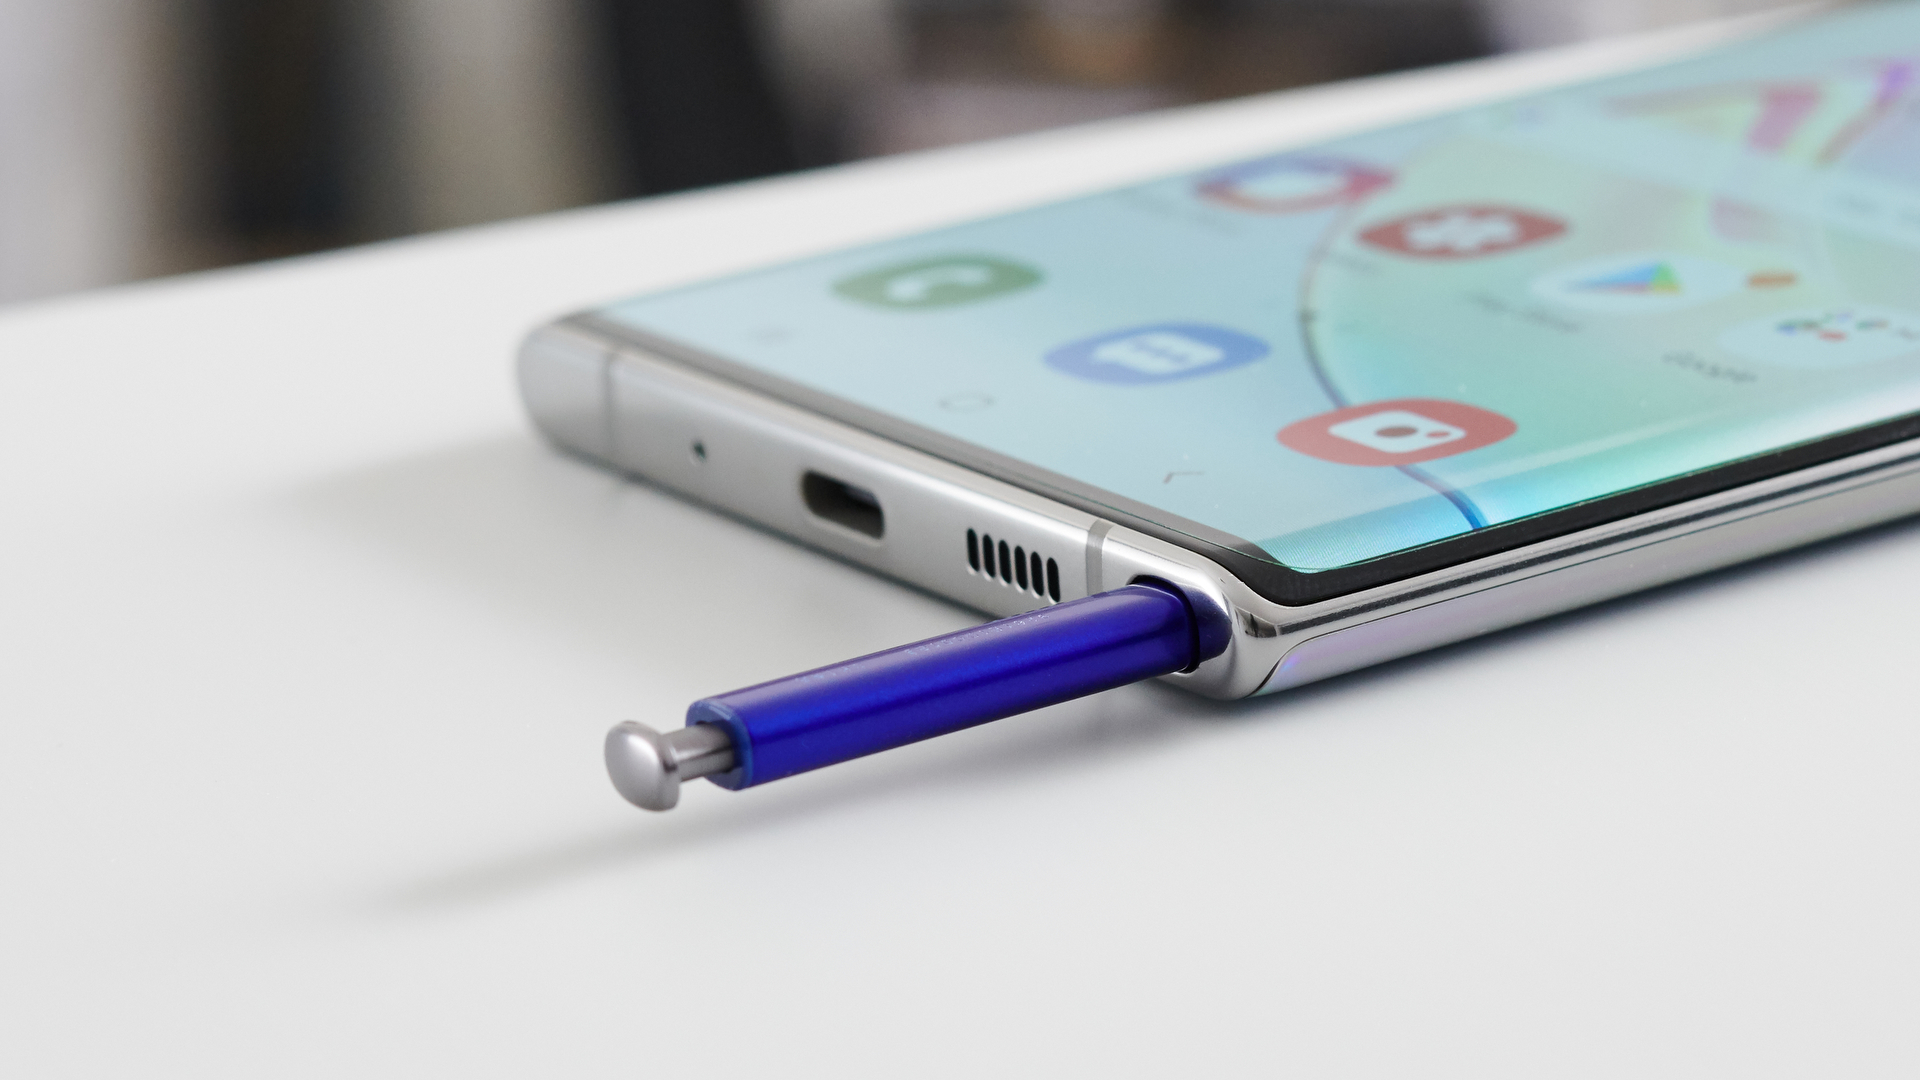 Samsung Galaxy Note 20 may launch on August 5 with these Gadgets- Digital Gadget Platform